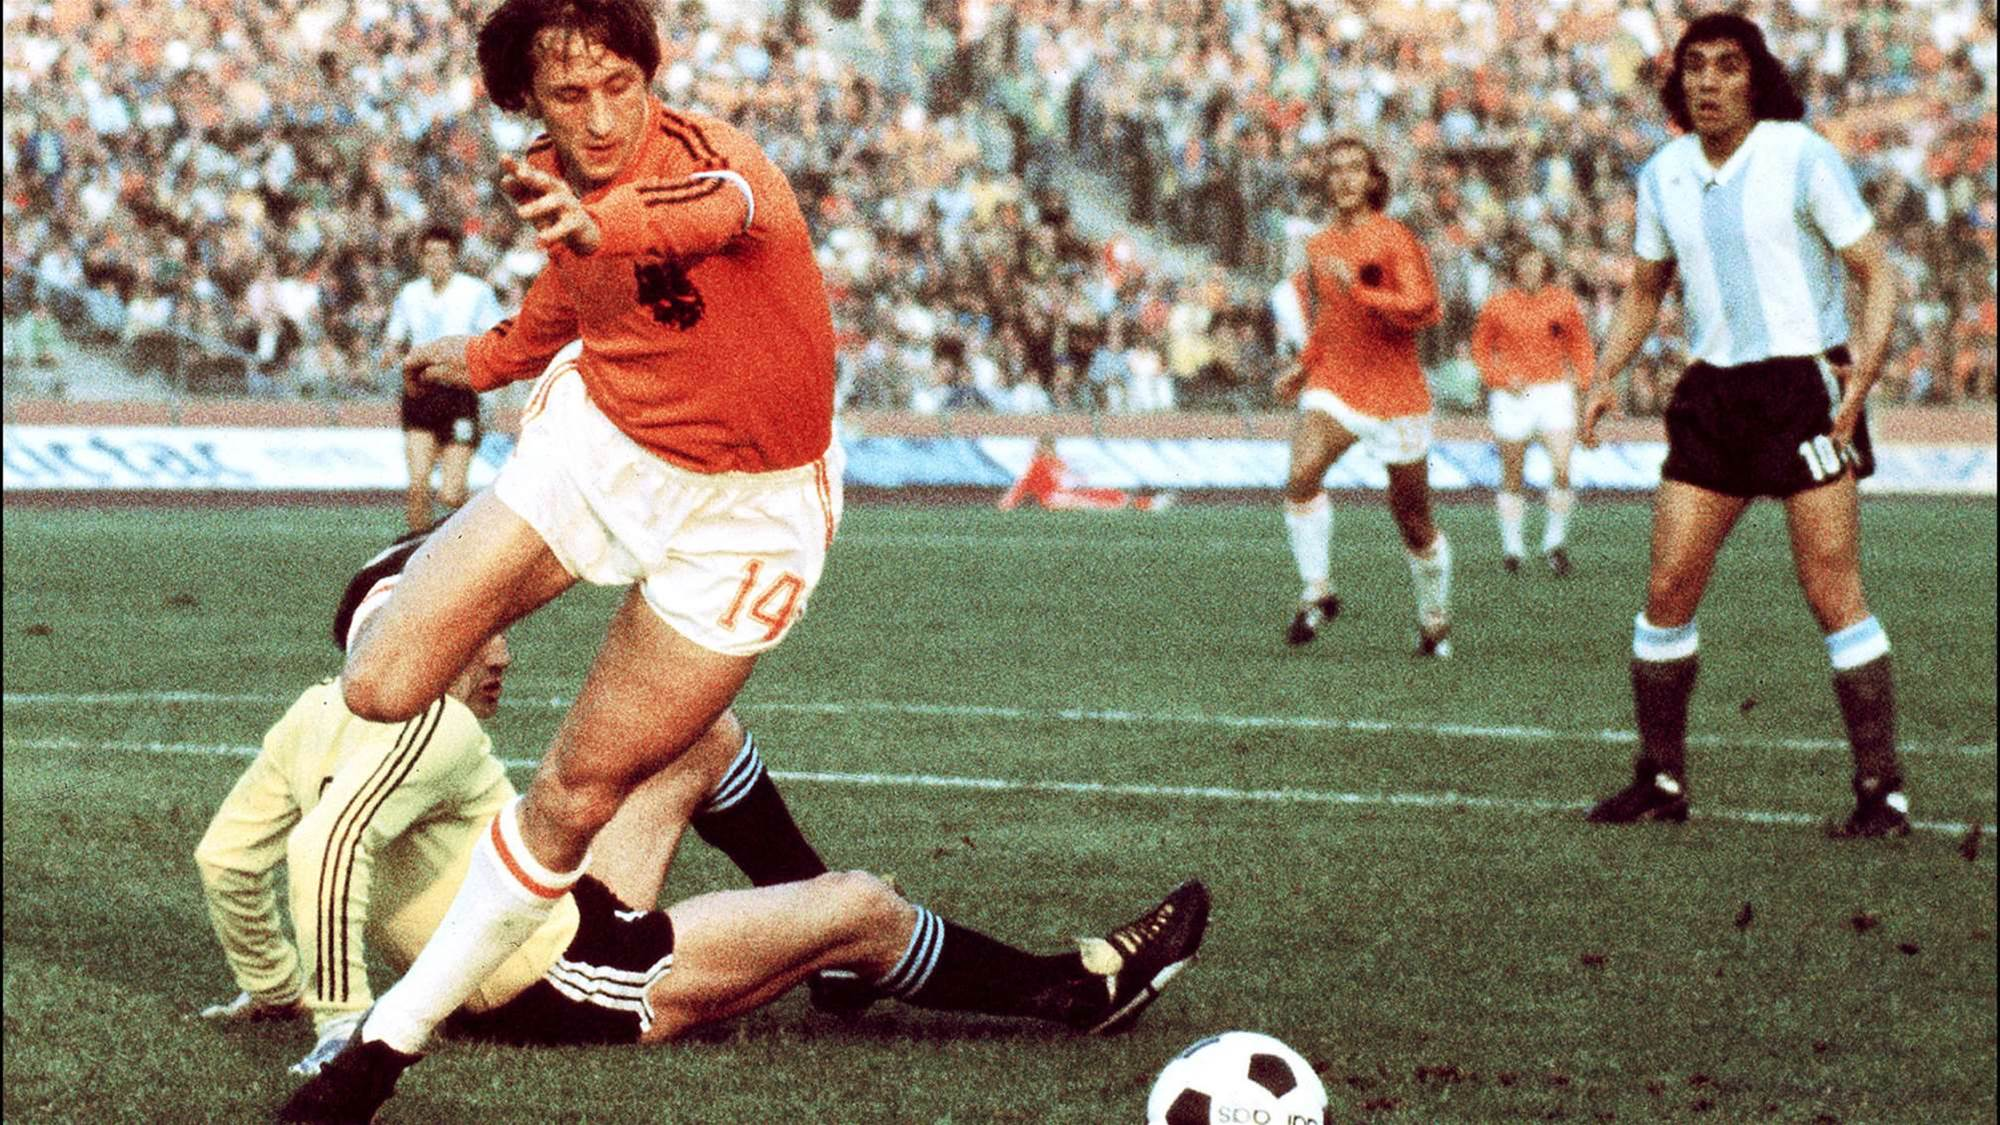 Football Firsts: The Cruyff Turn